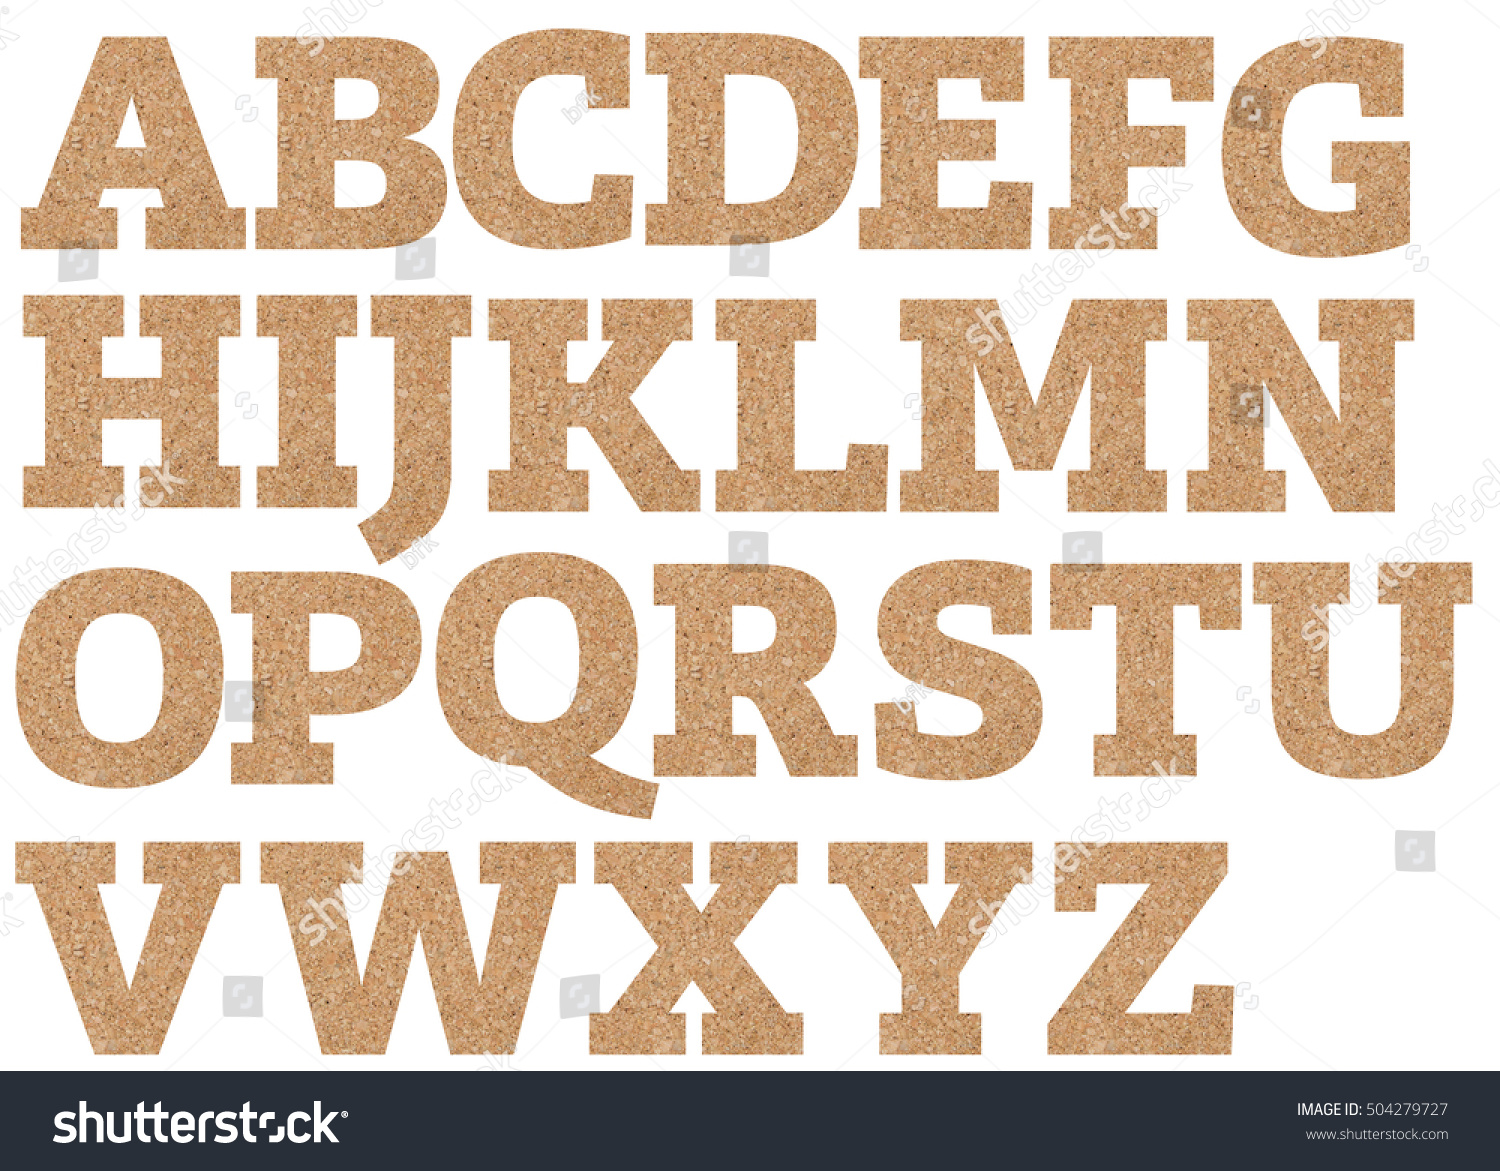 cork board font letters of english alphabet on a transparent wipe board